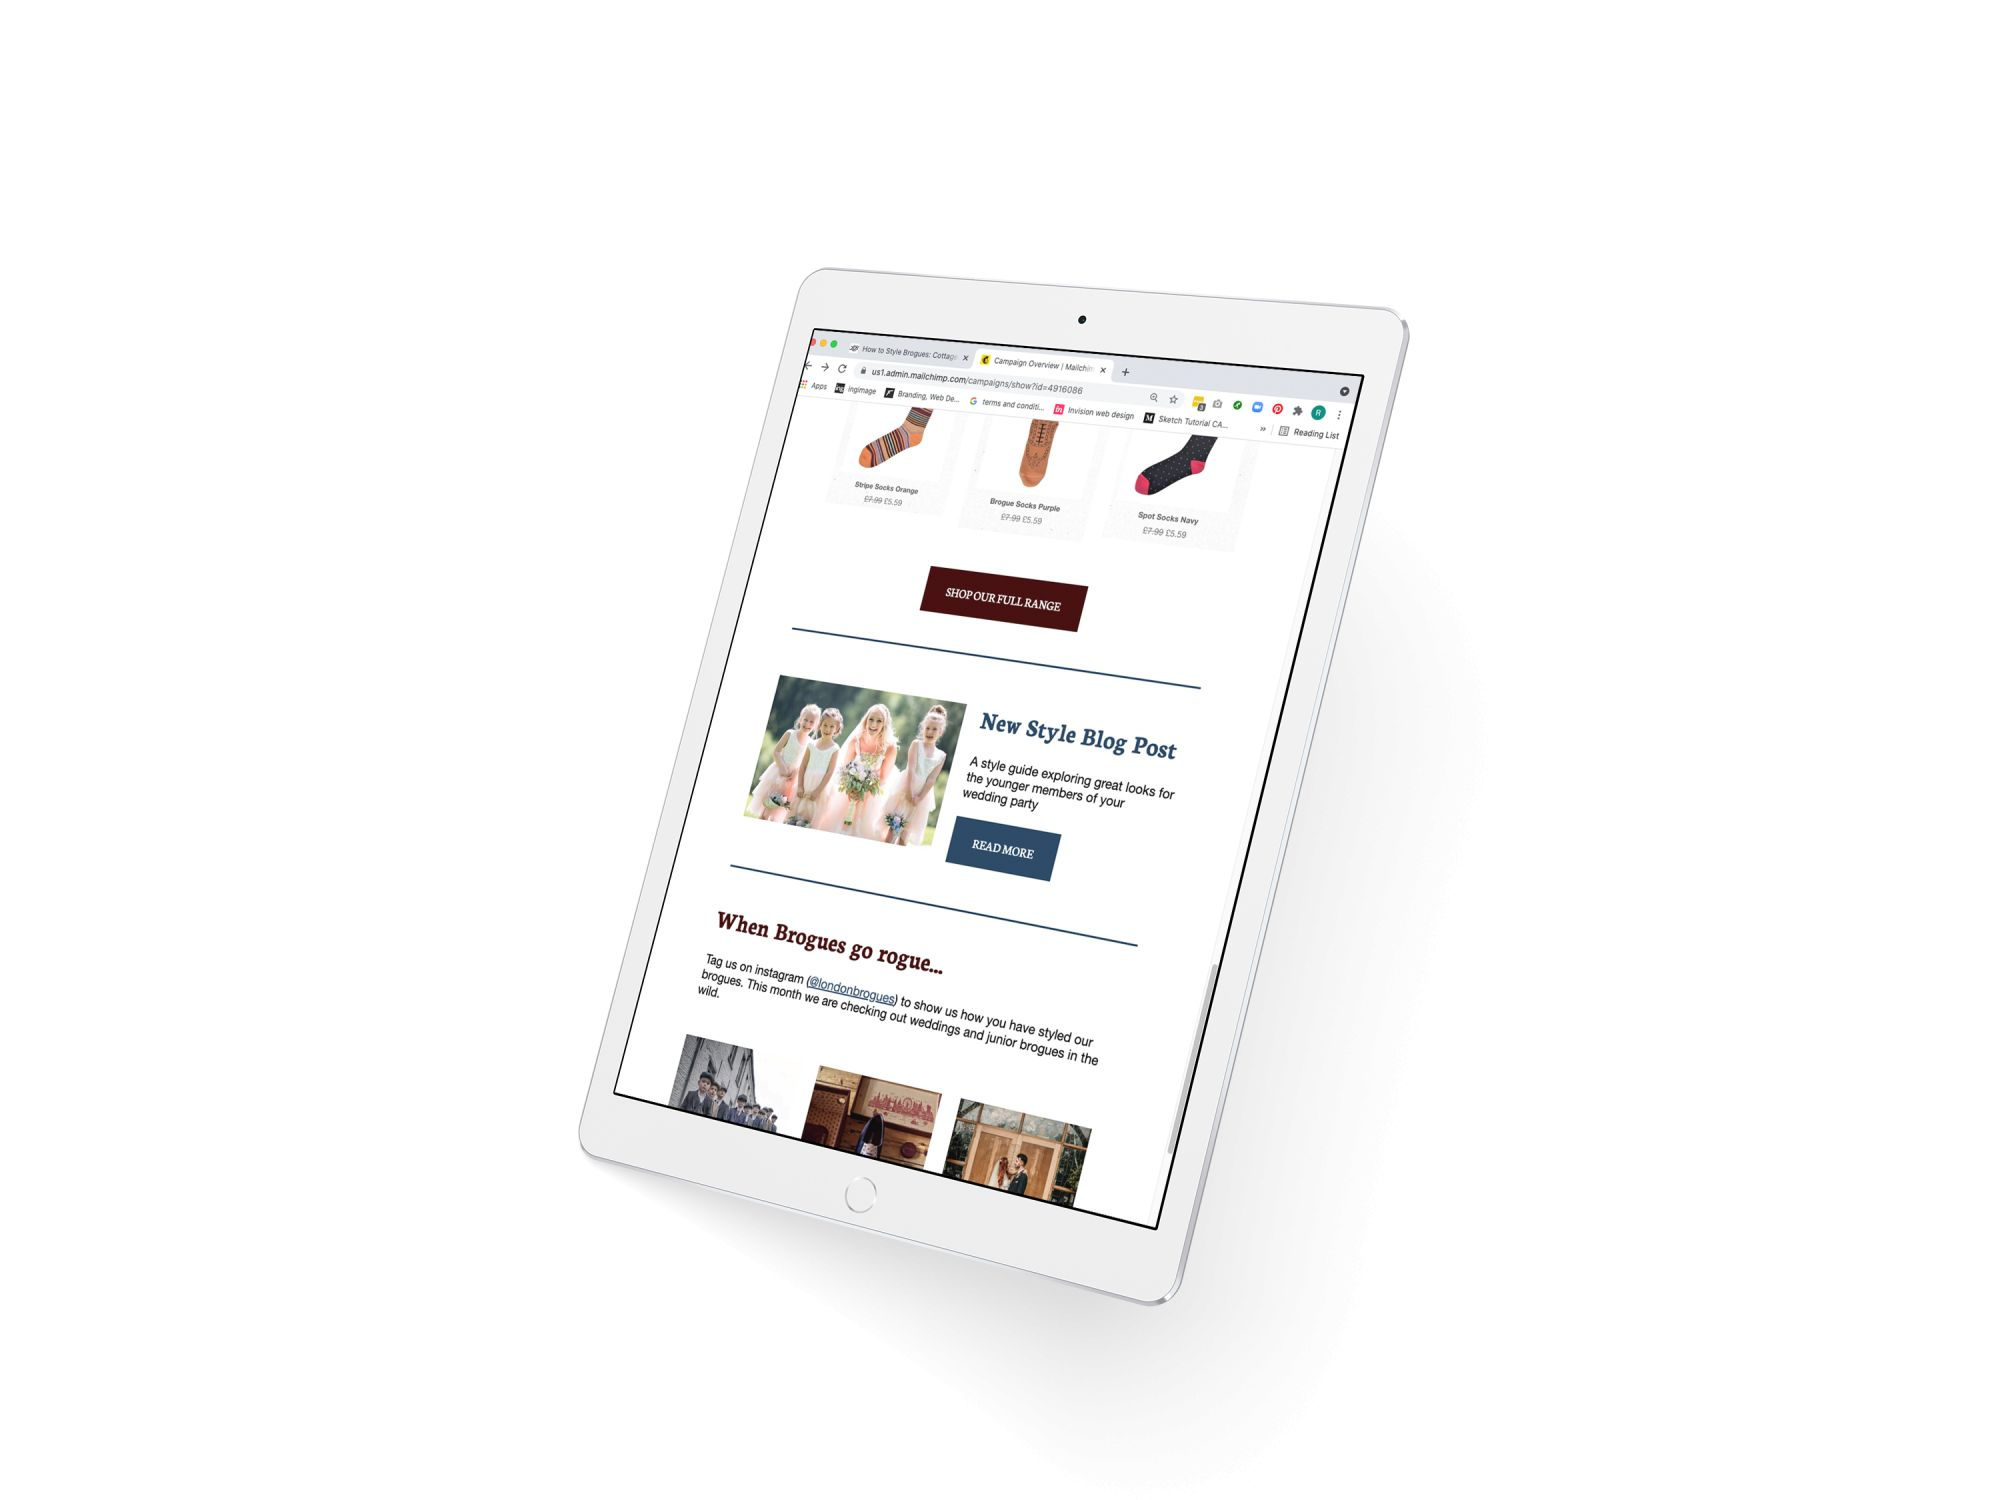 A White Ipad Pro displaying an email newsletter